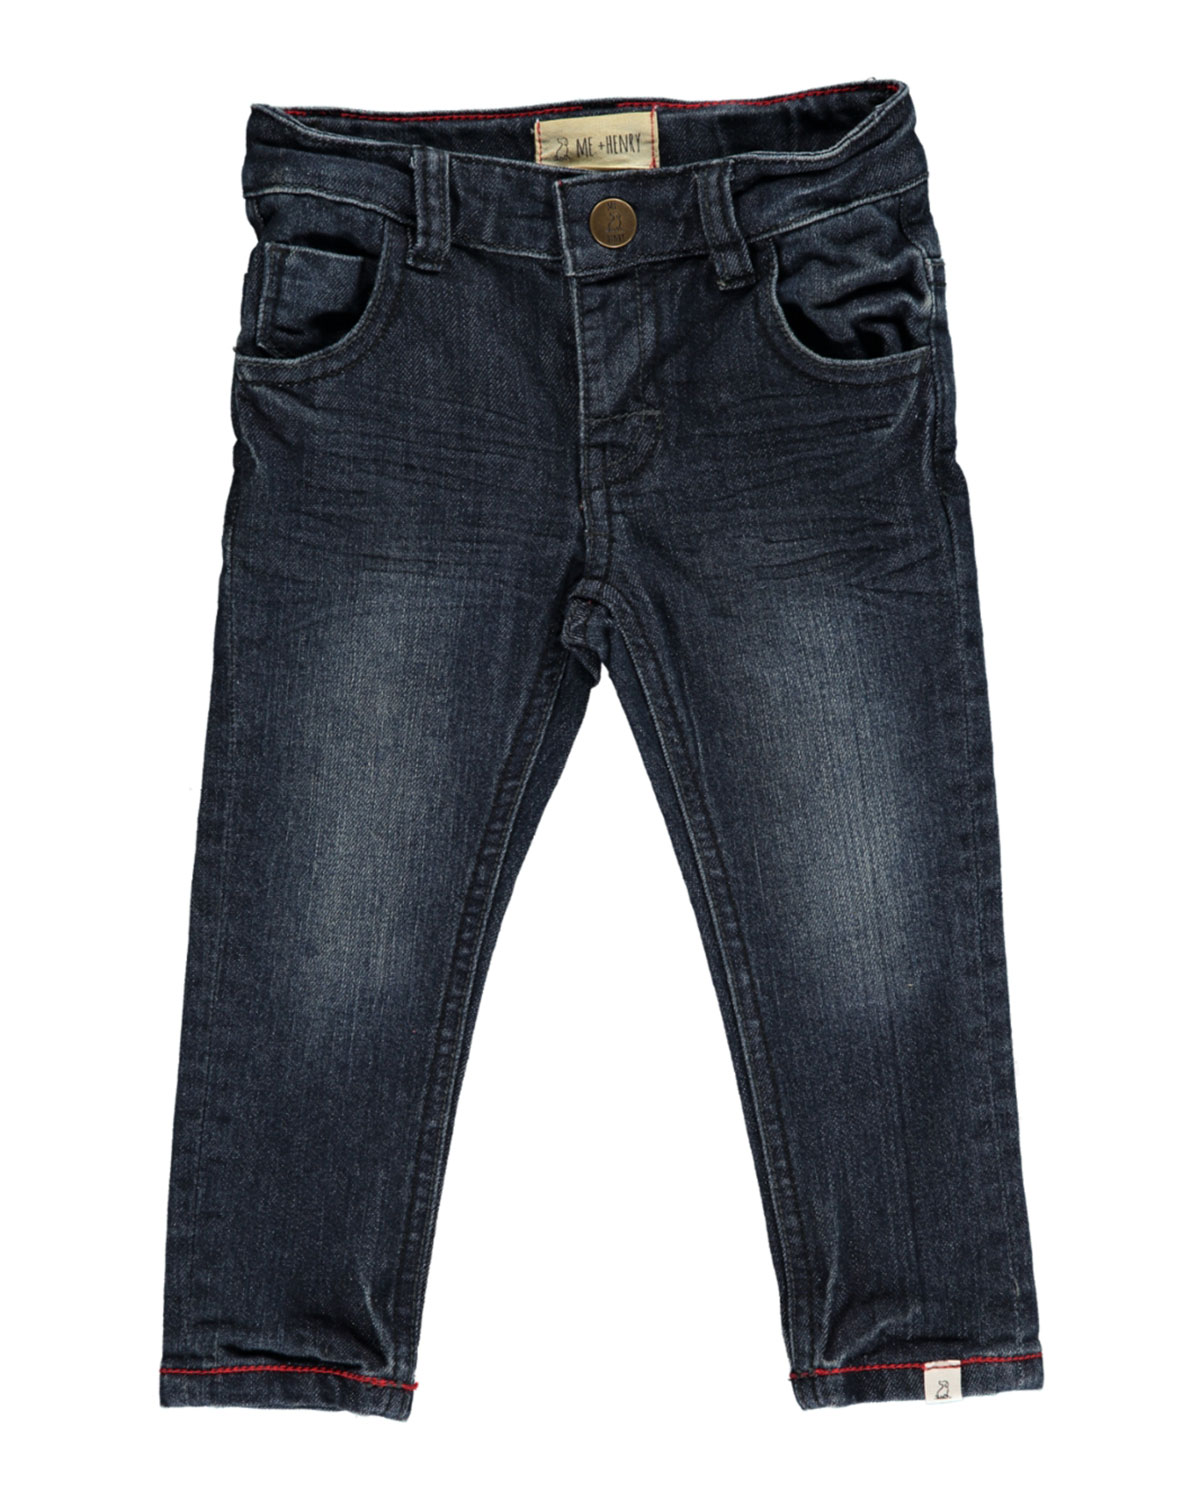 Me & Henry Slim Fit Denim Jeans w/ Children's Book, Size 6-24 Months